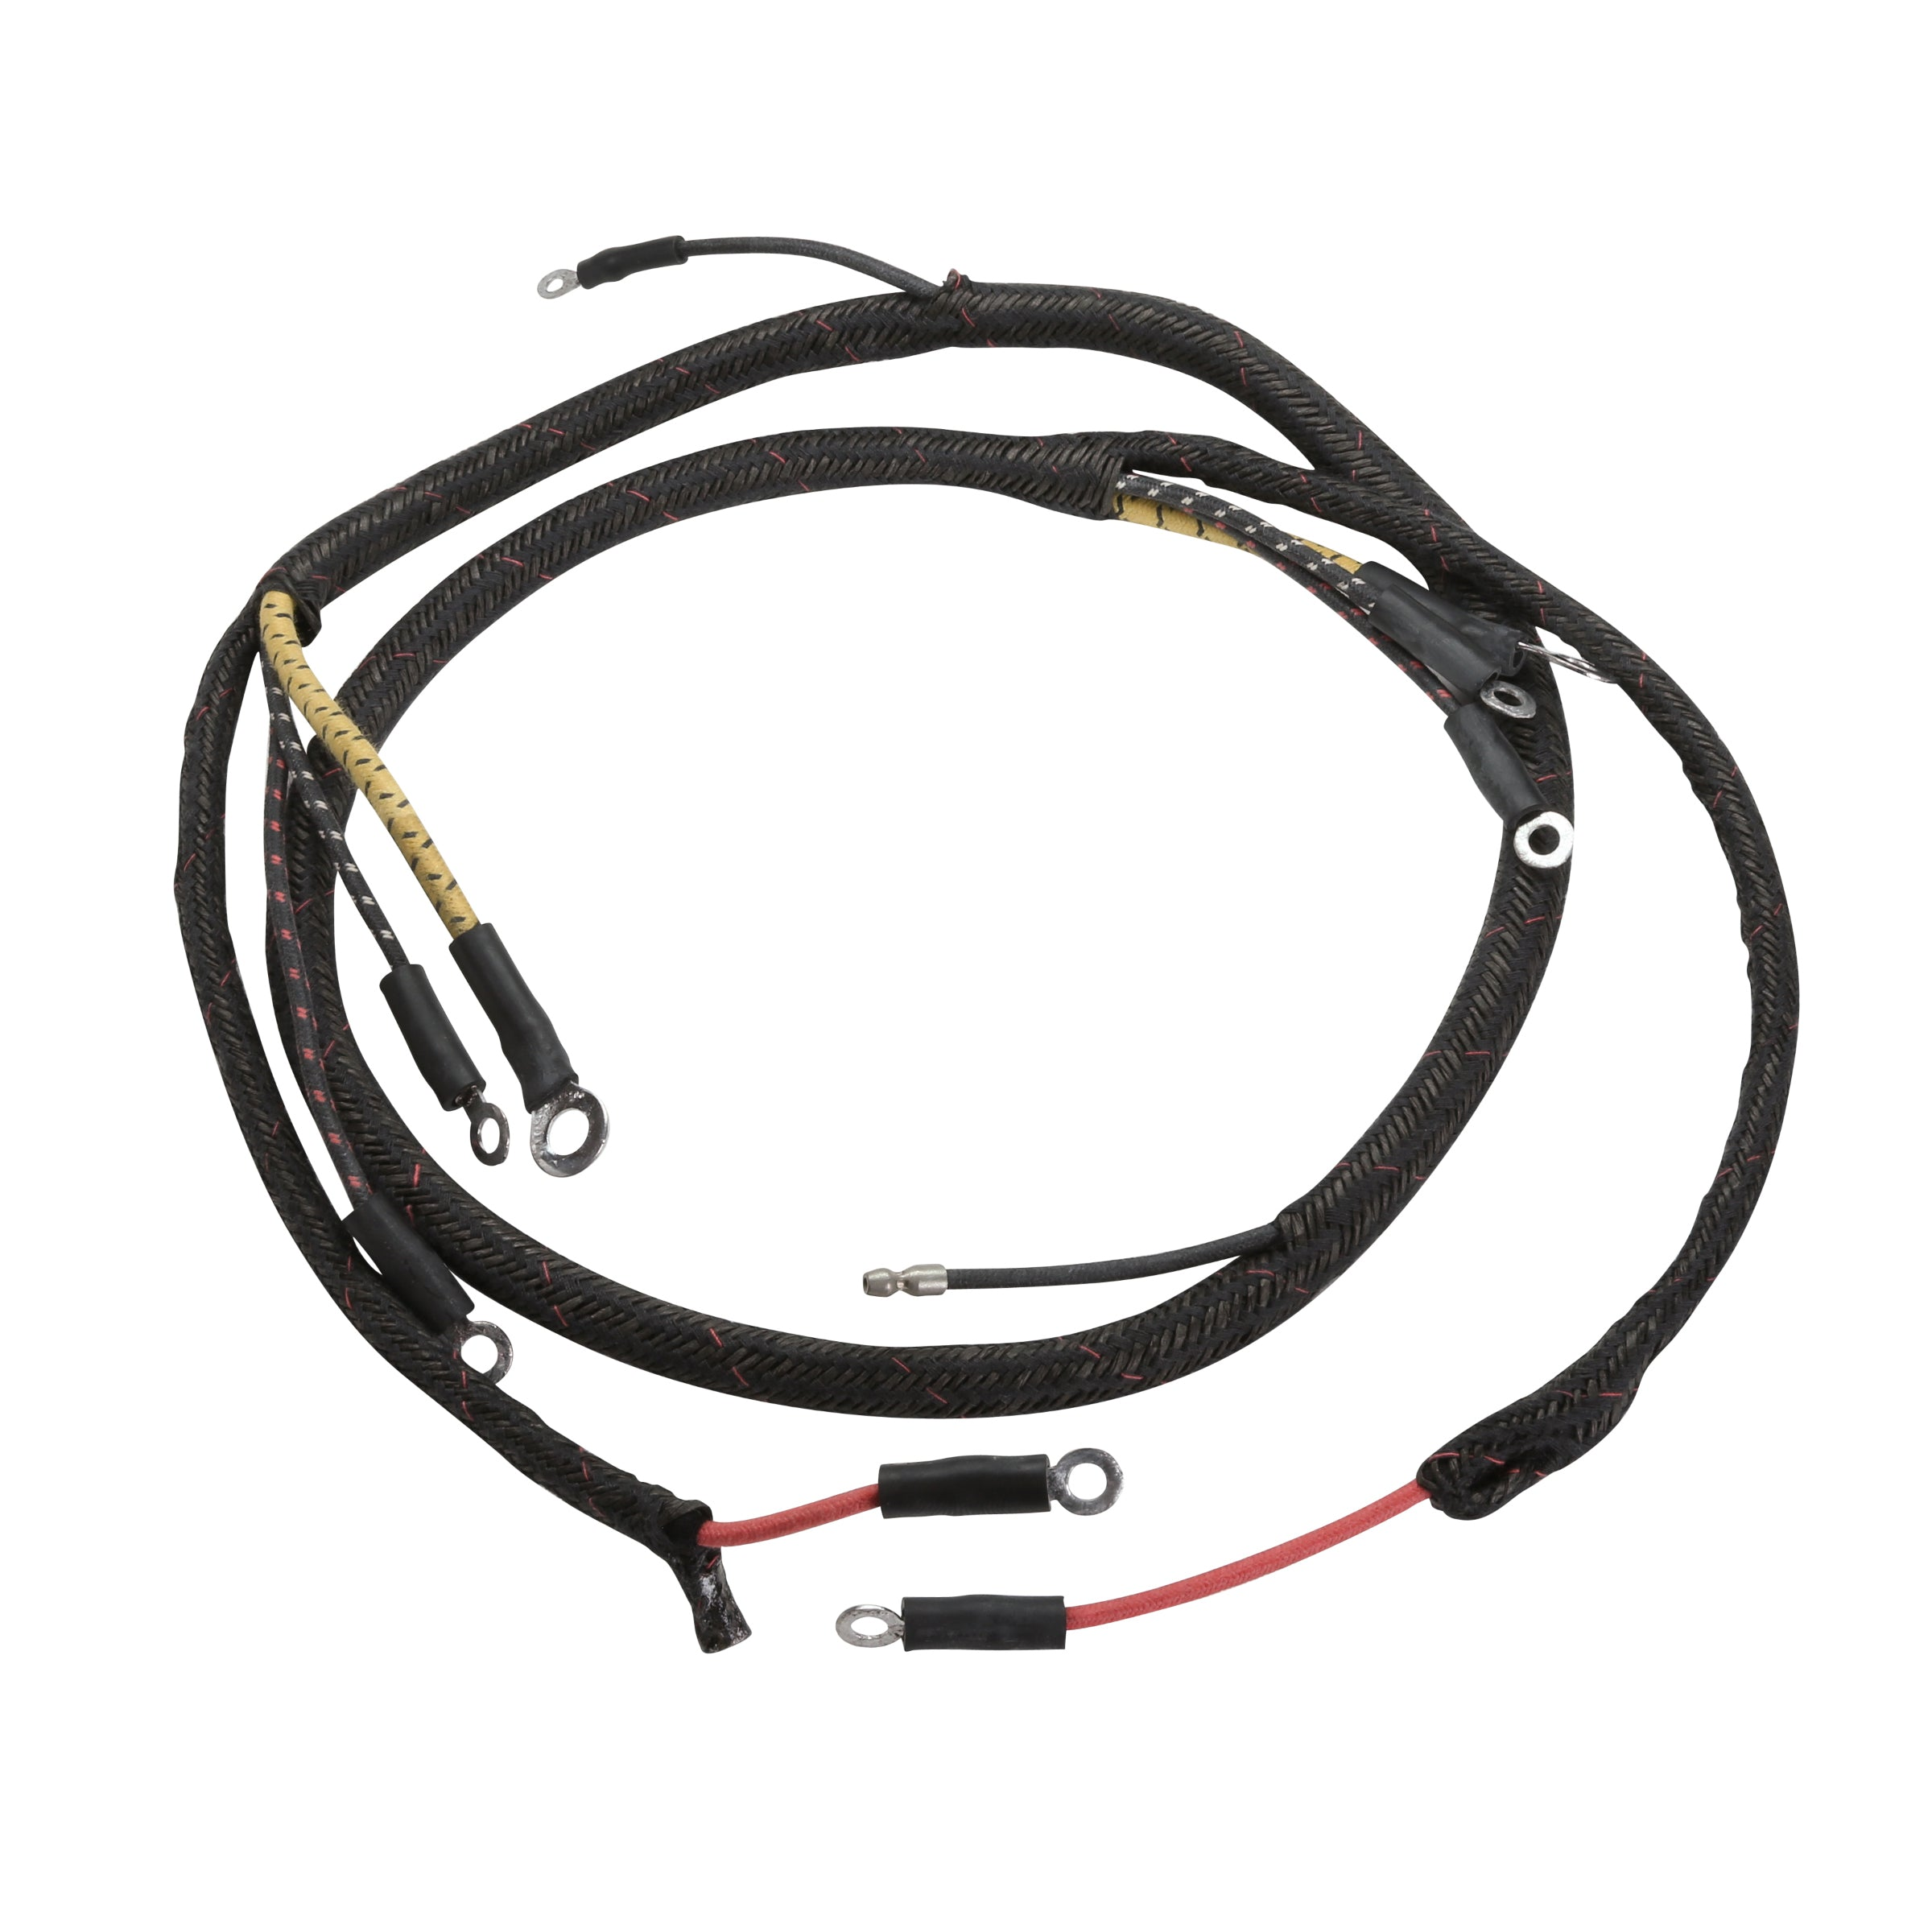 Taillight Wiring Harness • 1941-48 Ford All (Except Deluxe, Super Deluxe, Special & Wagon)